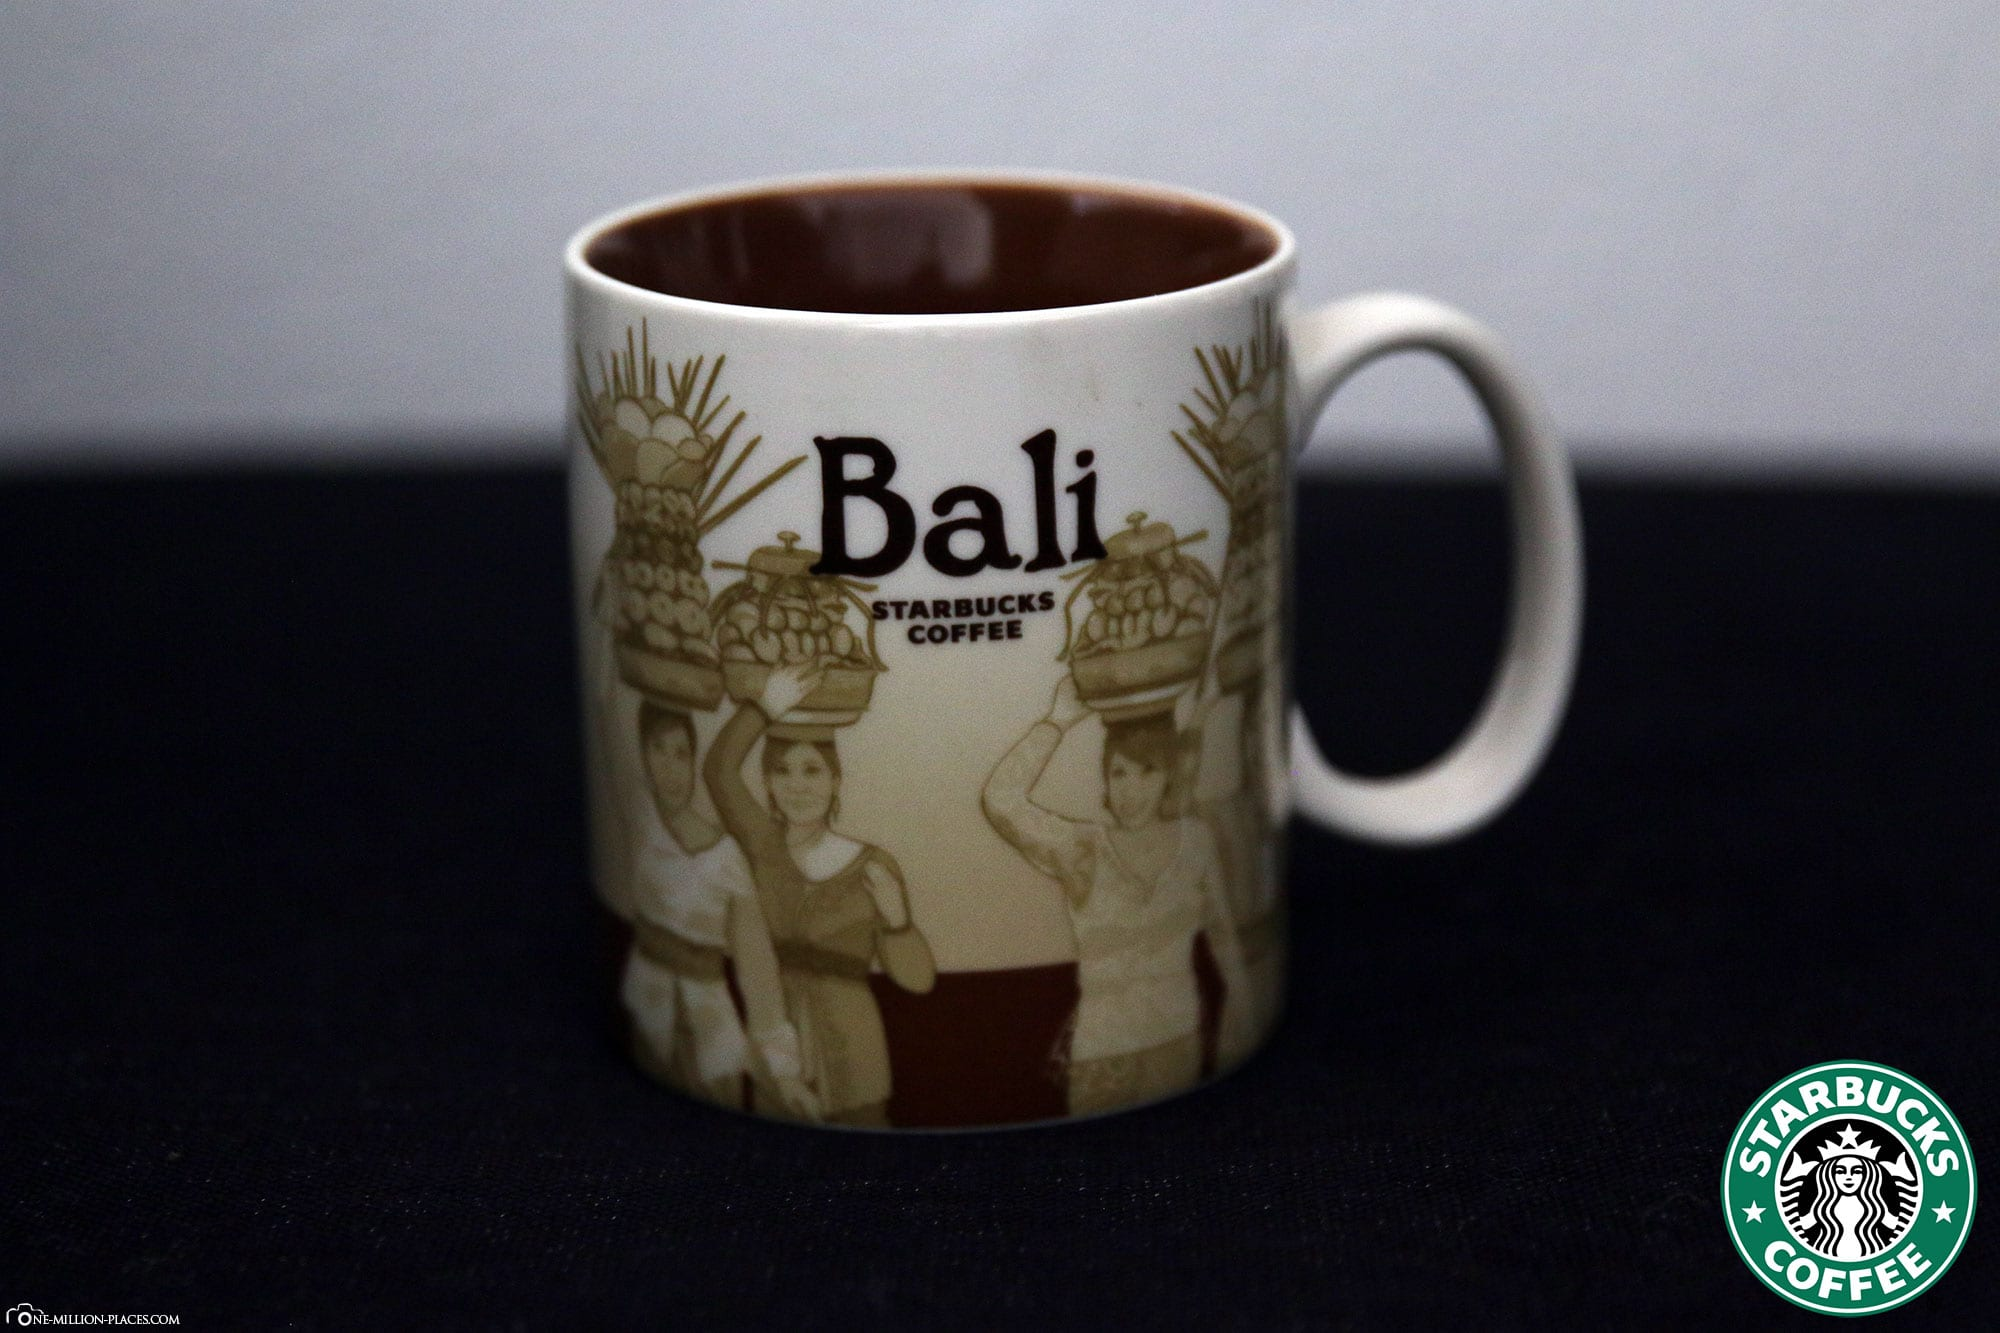 Bali, Starbucks Cup, Global Icon Series, City Mugs, Collection, Indonesia, Travelreport